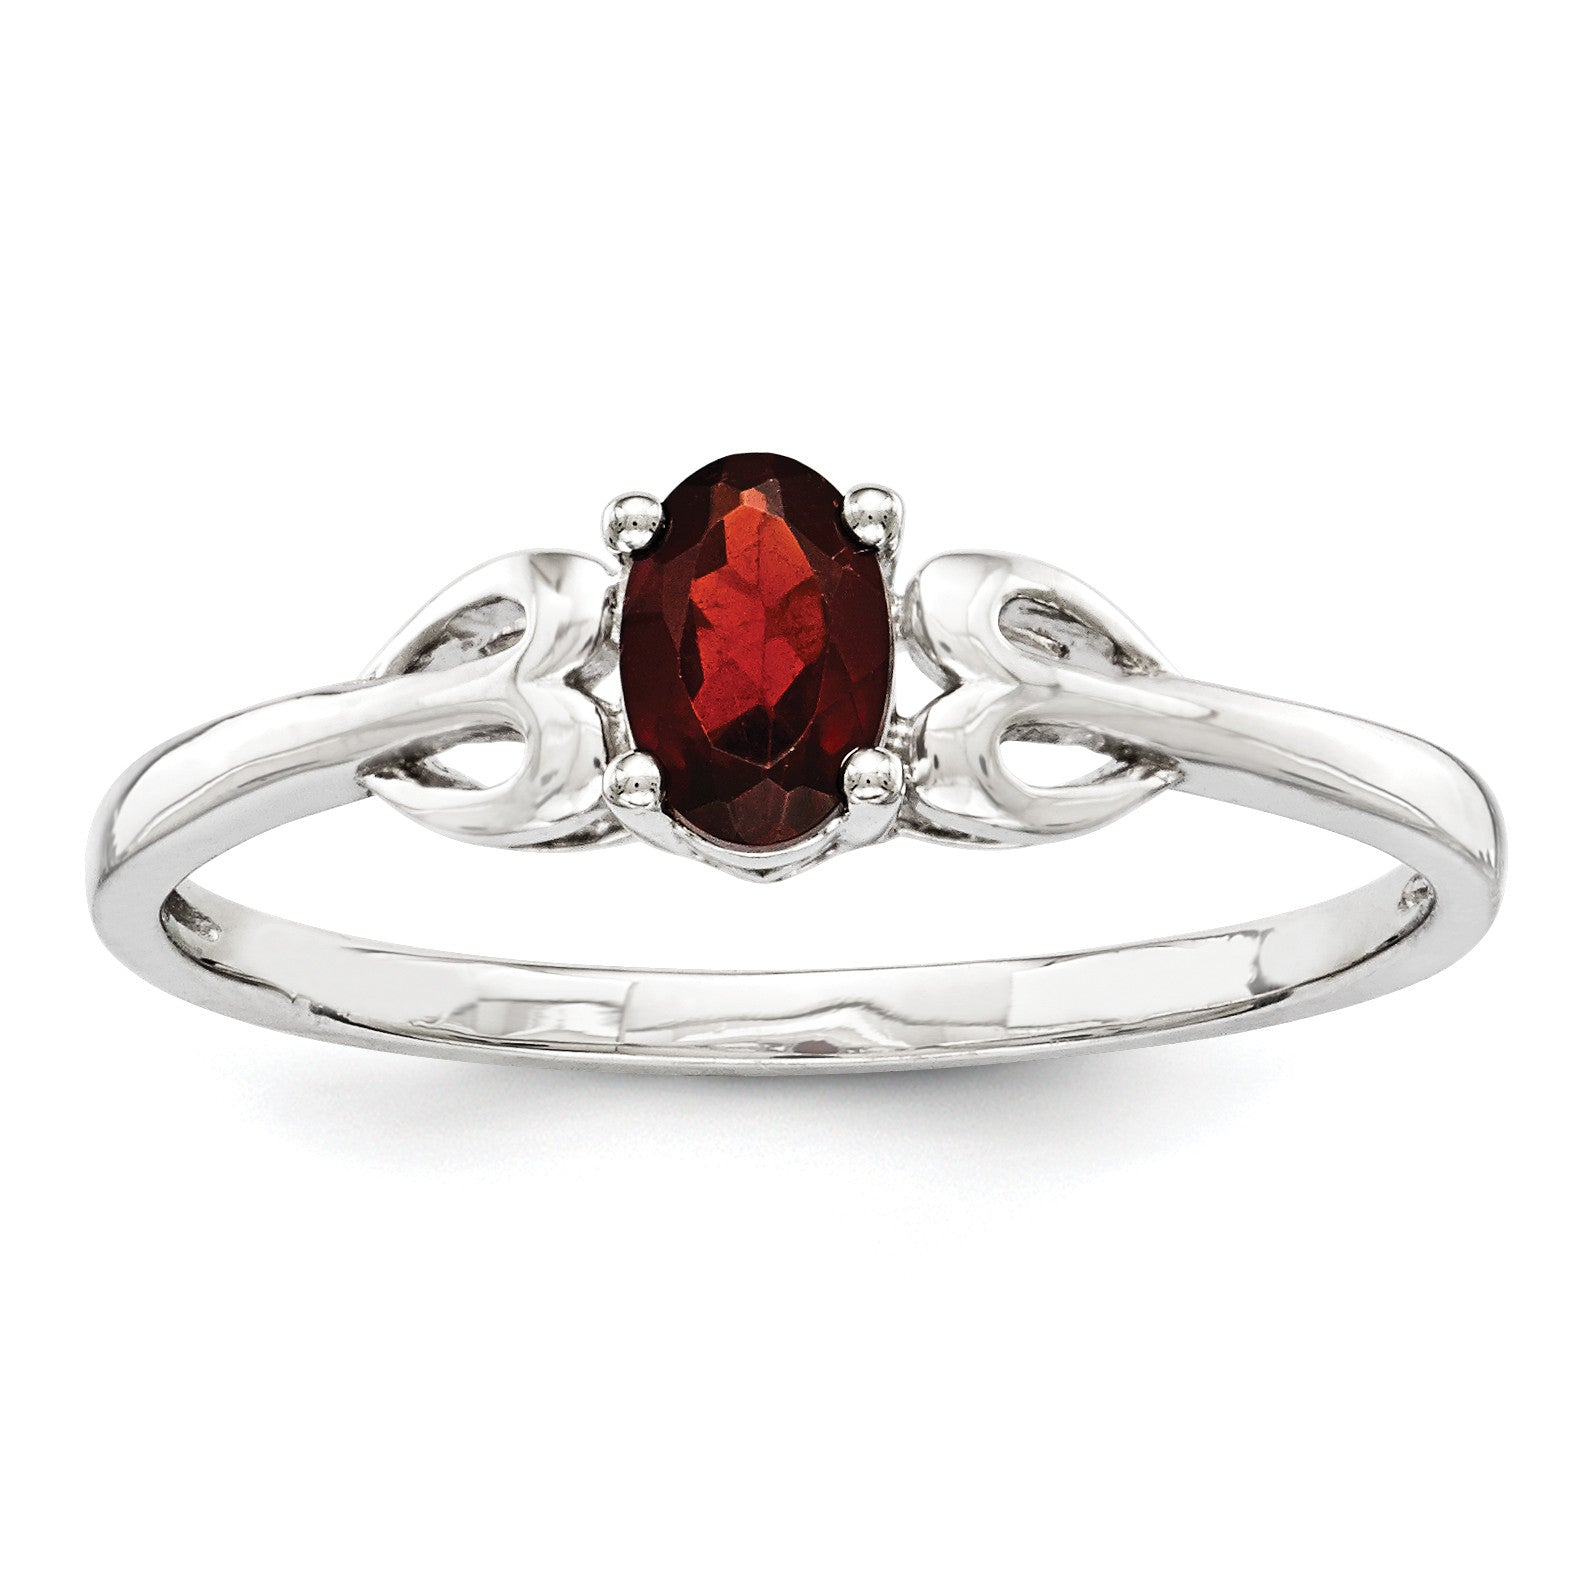 Sterling Silver Rhodium-plated Garnet Ring QBR20JAN - shirin-diamonds